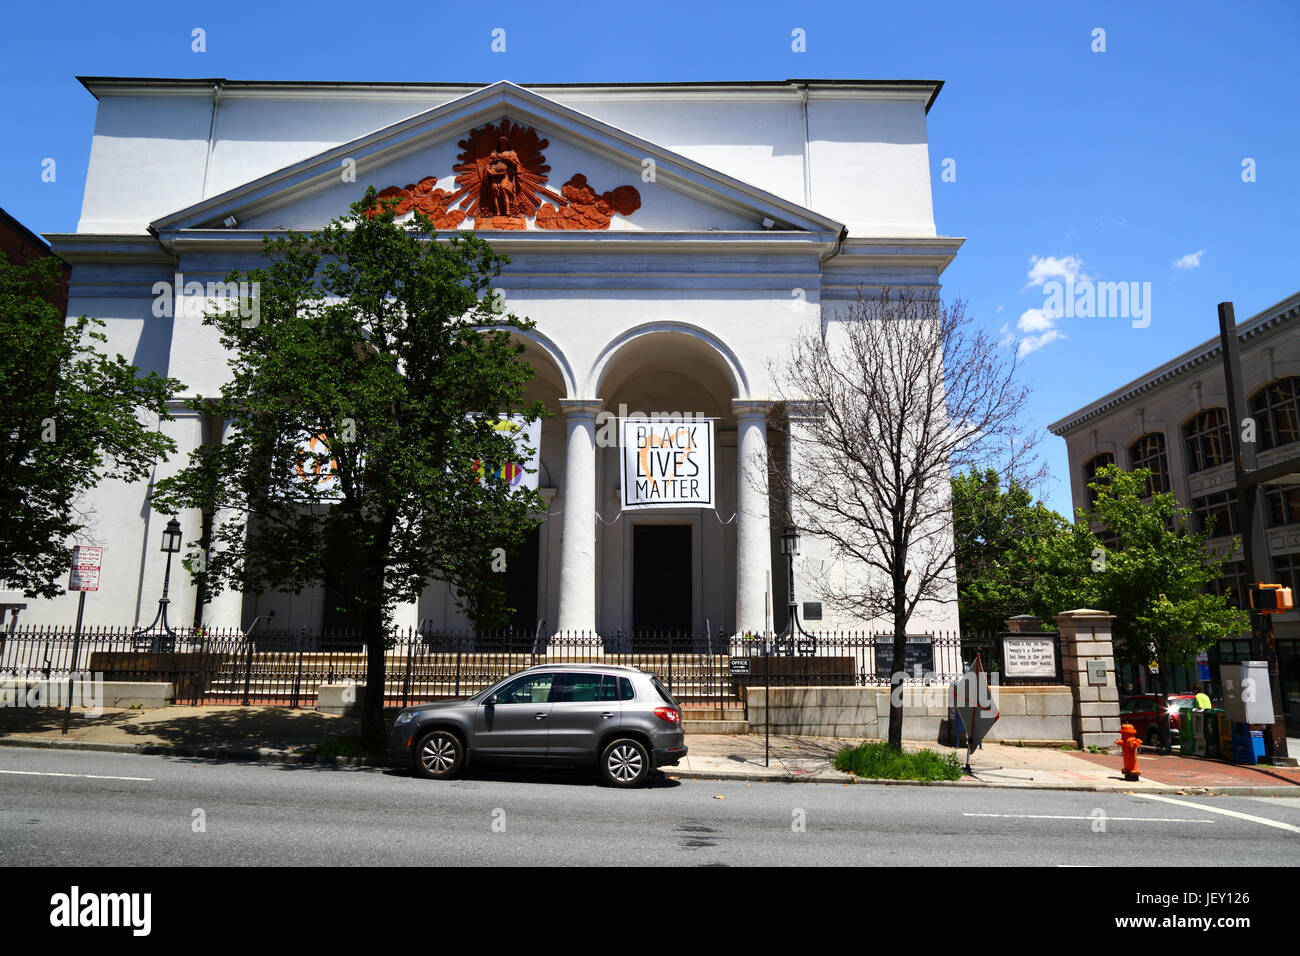 Black Lives Matter banner on entrance to First Unitarian Church, Baltimore, Maryland, USA - Stock Image